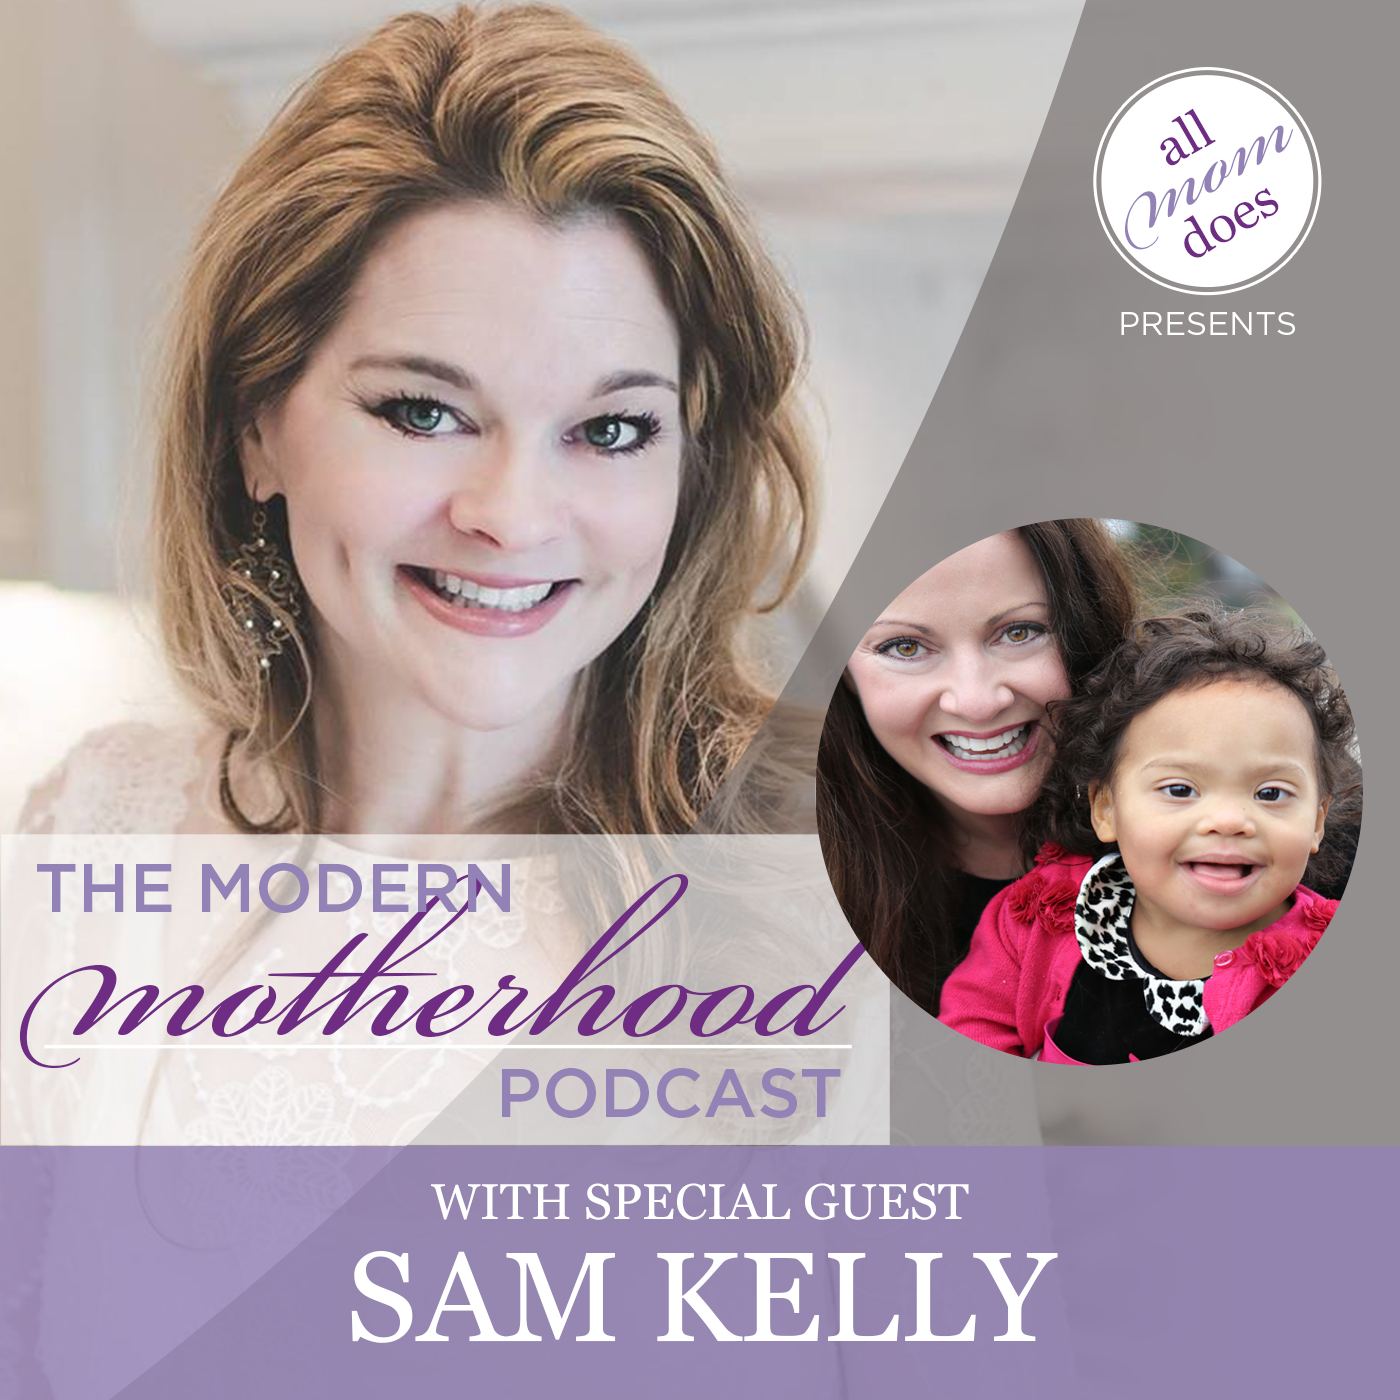 The Modern Motherhood Podcast #6: Sam Kelly